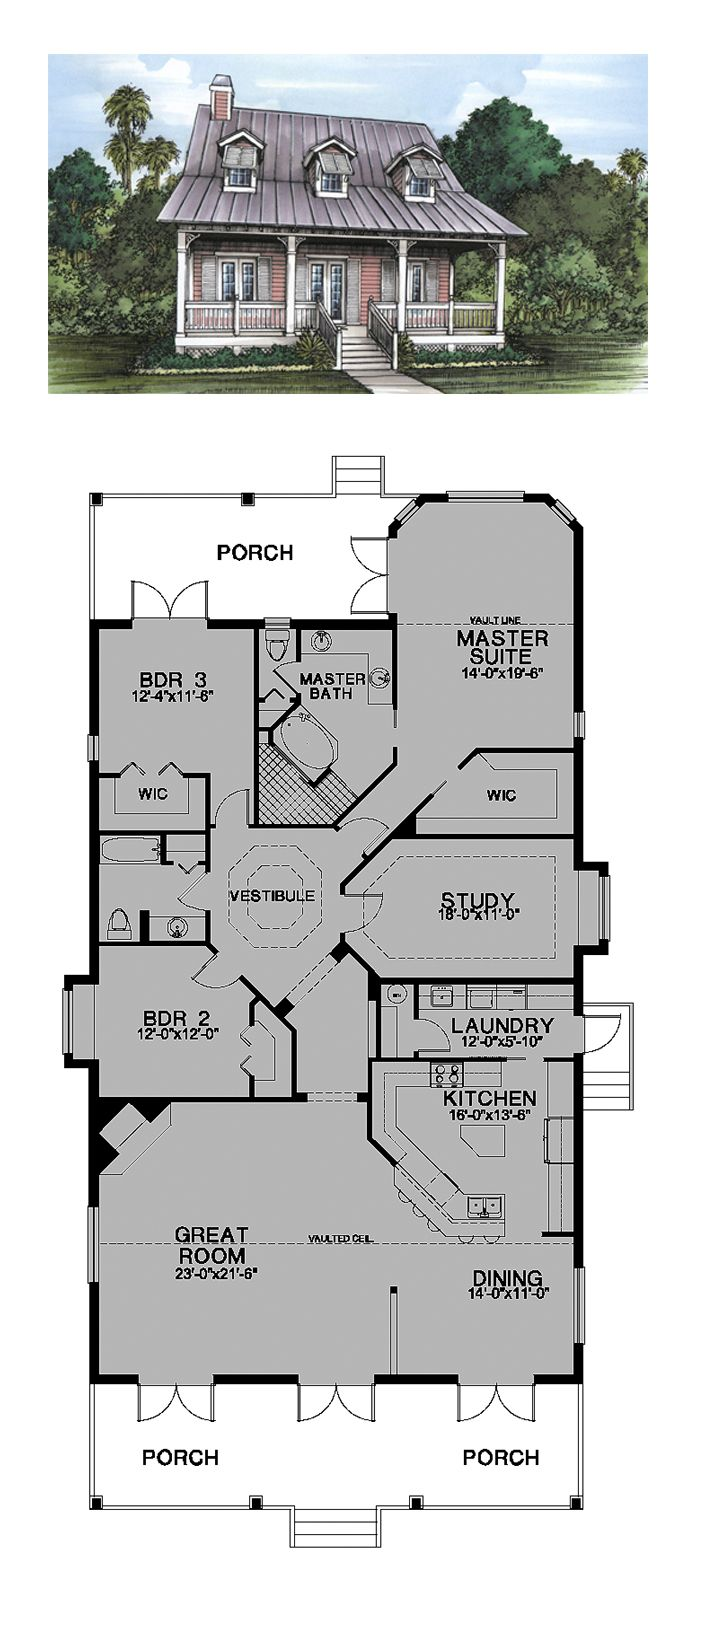 Sq ft florida cracker style cool house plan id chp total also top metal barndominium floor plans for your home ideas rh co pinterest